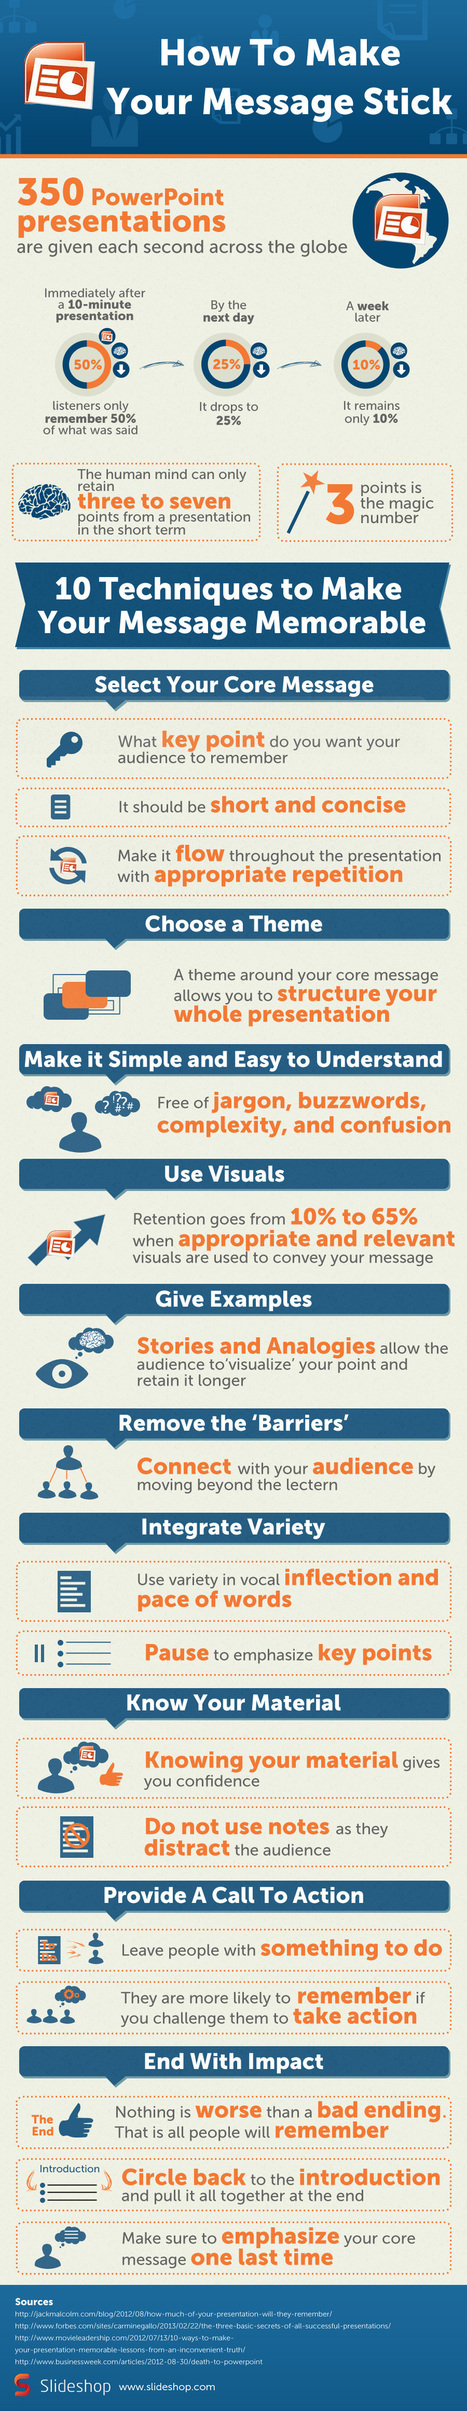 Presentations Infographic: Making Your Message Stick | On education | Scoop.it